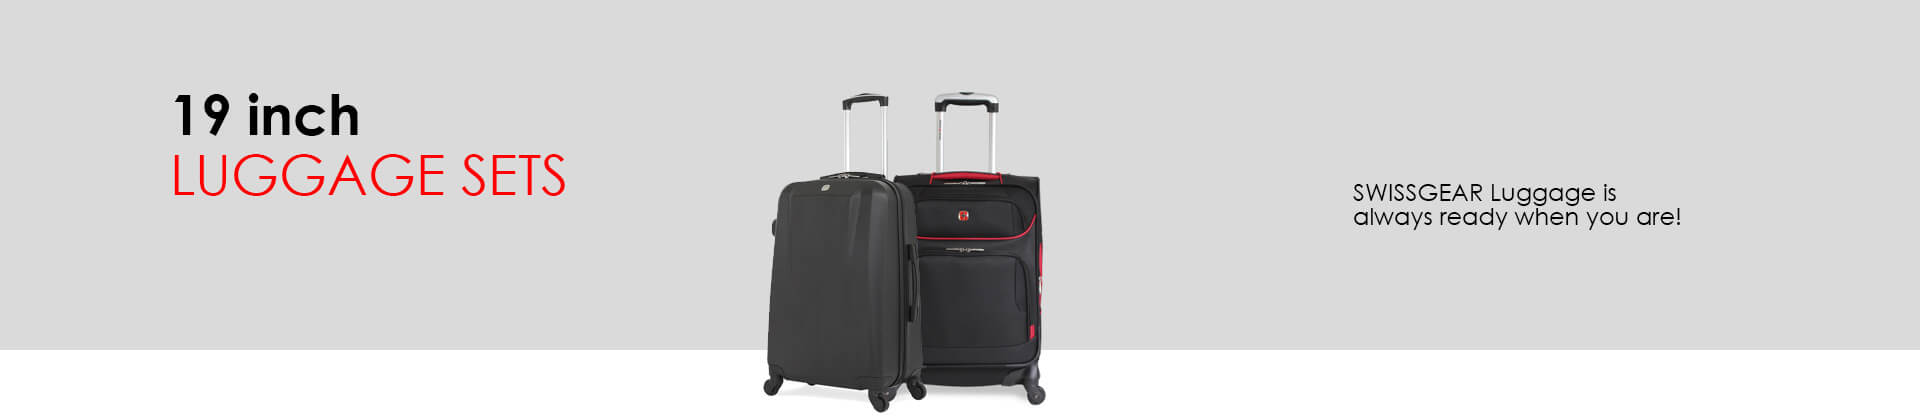 Swissgear 19 Inch Luggage Sets